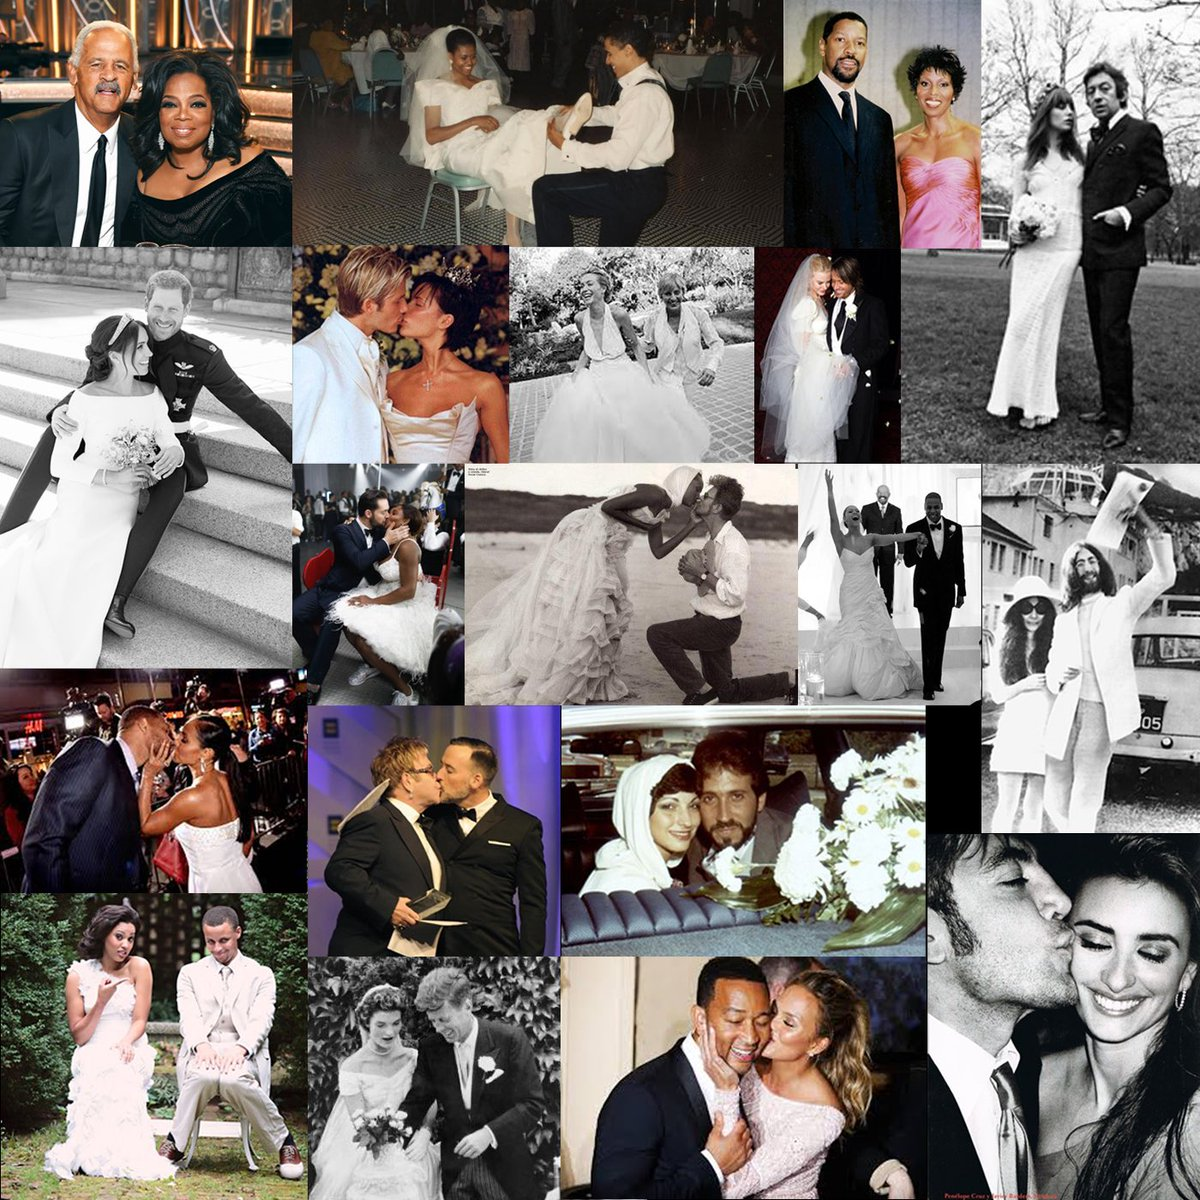 Some of my favorites..#GreatestLove.  Who are yours? Let me know. #GreatestLove